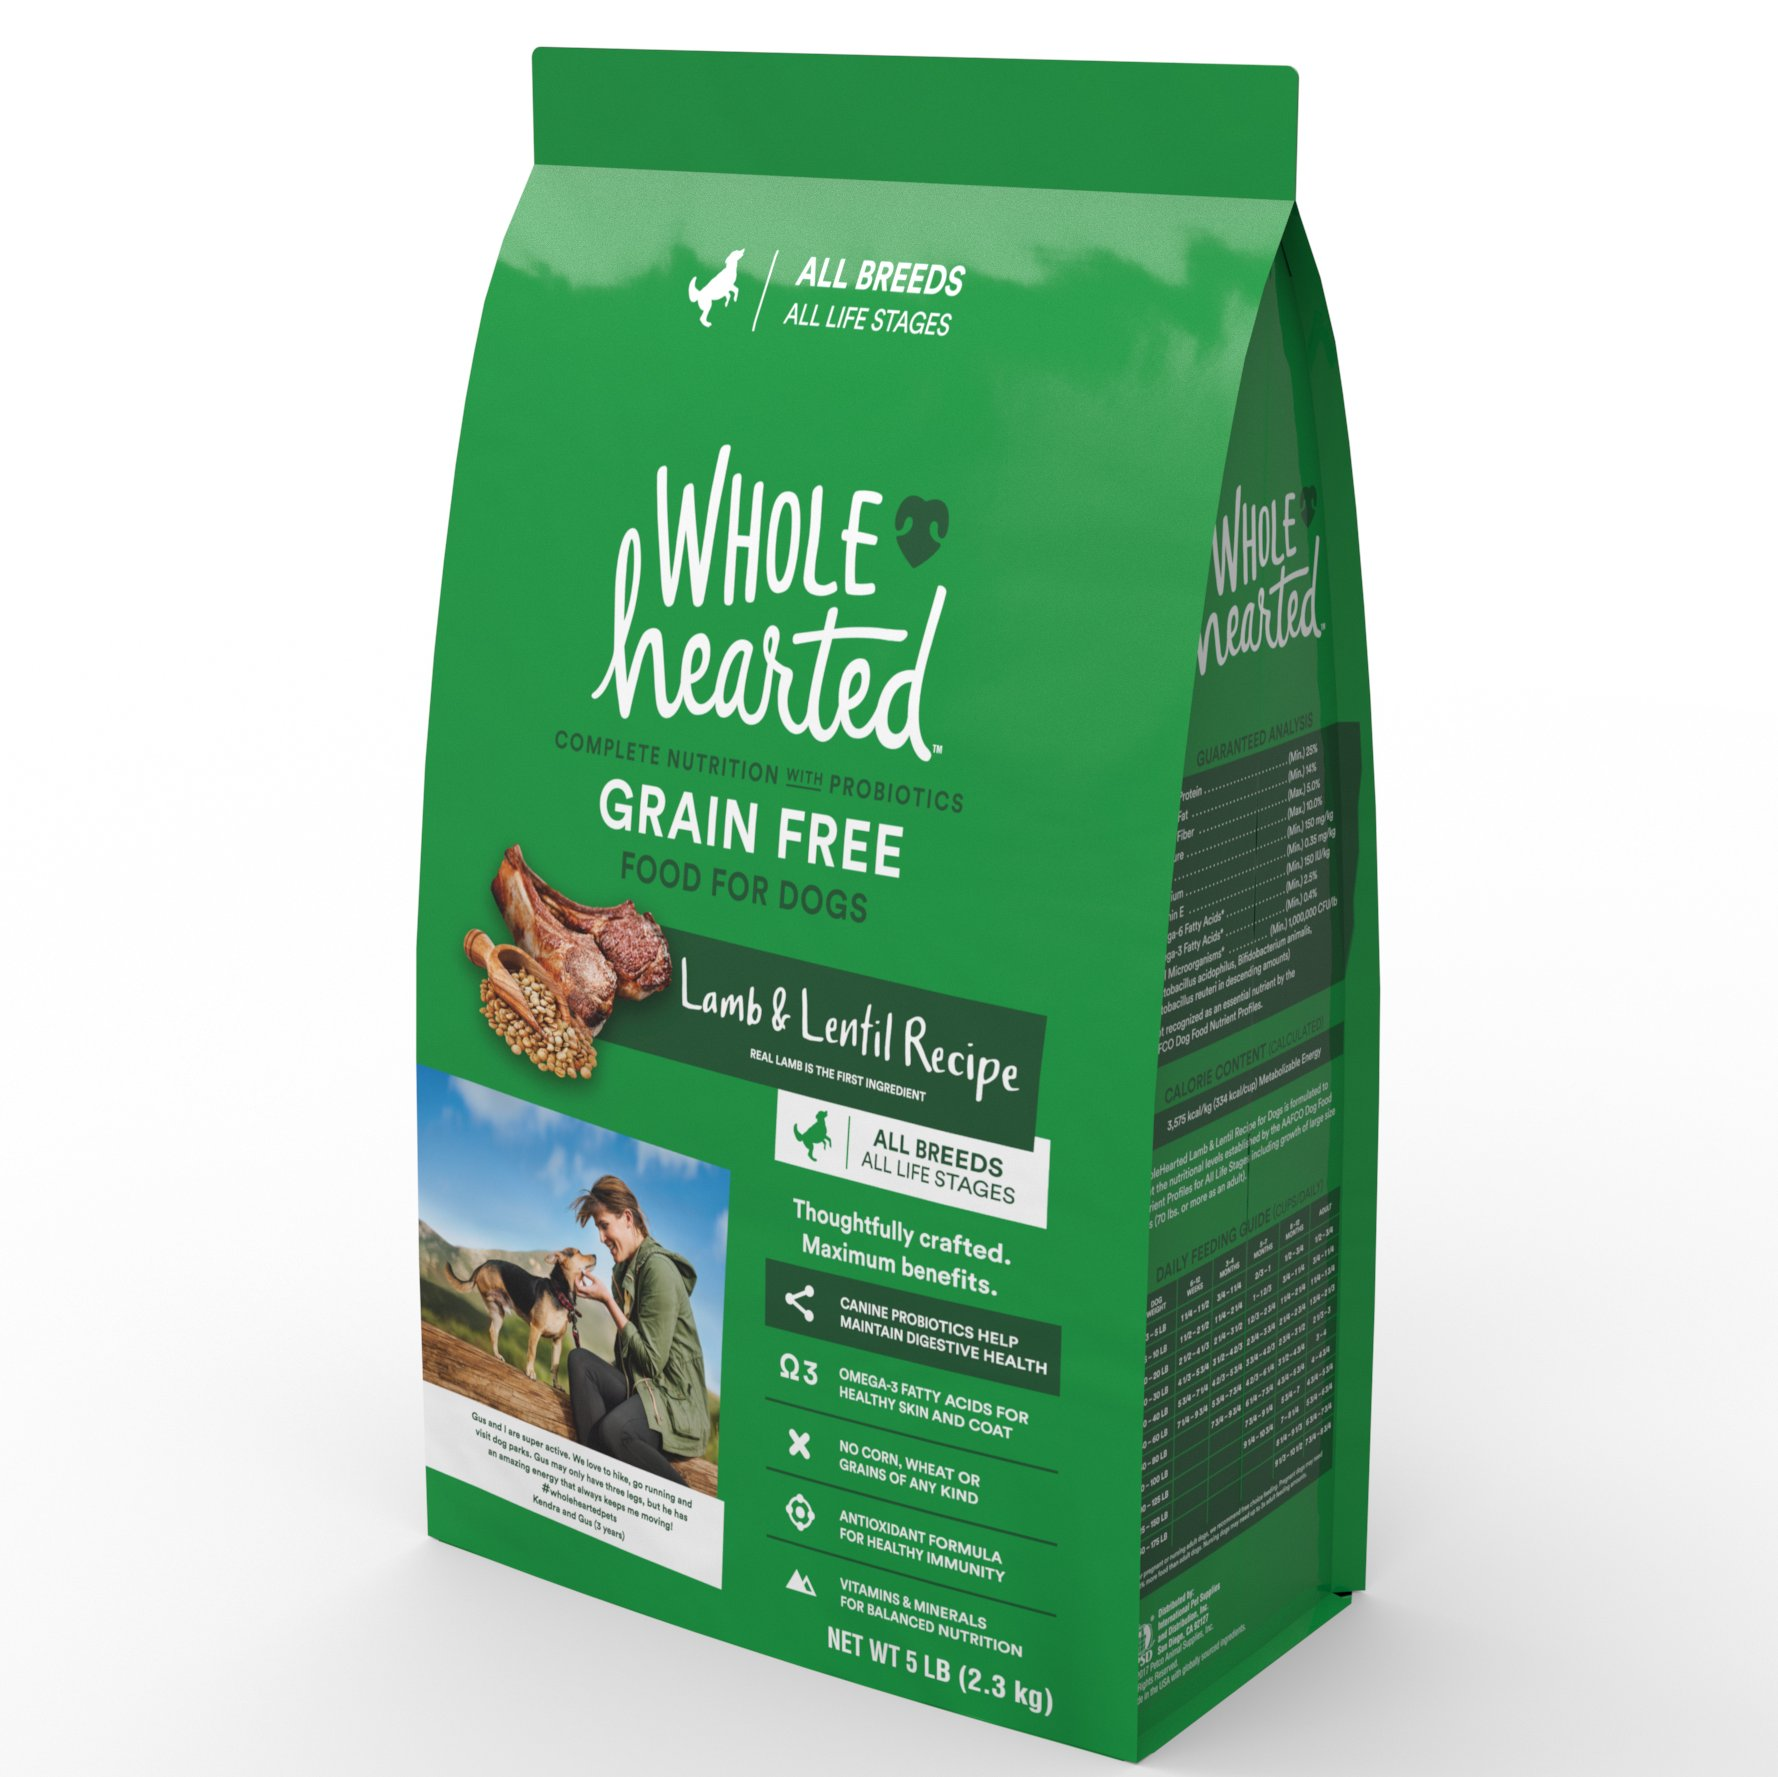 WholeHearted Grain Free All Life Stages Lamb and Lentil Formula Dry Dog Food, 5 lbs.